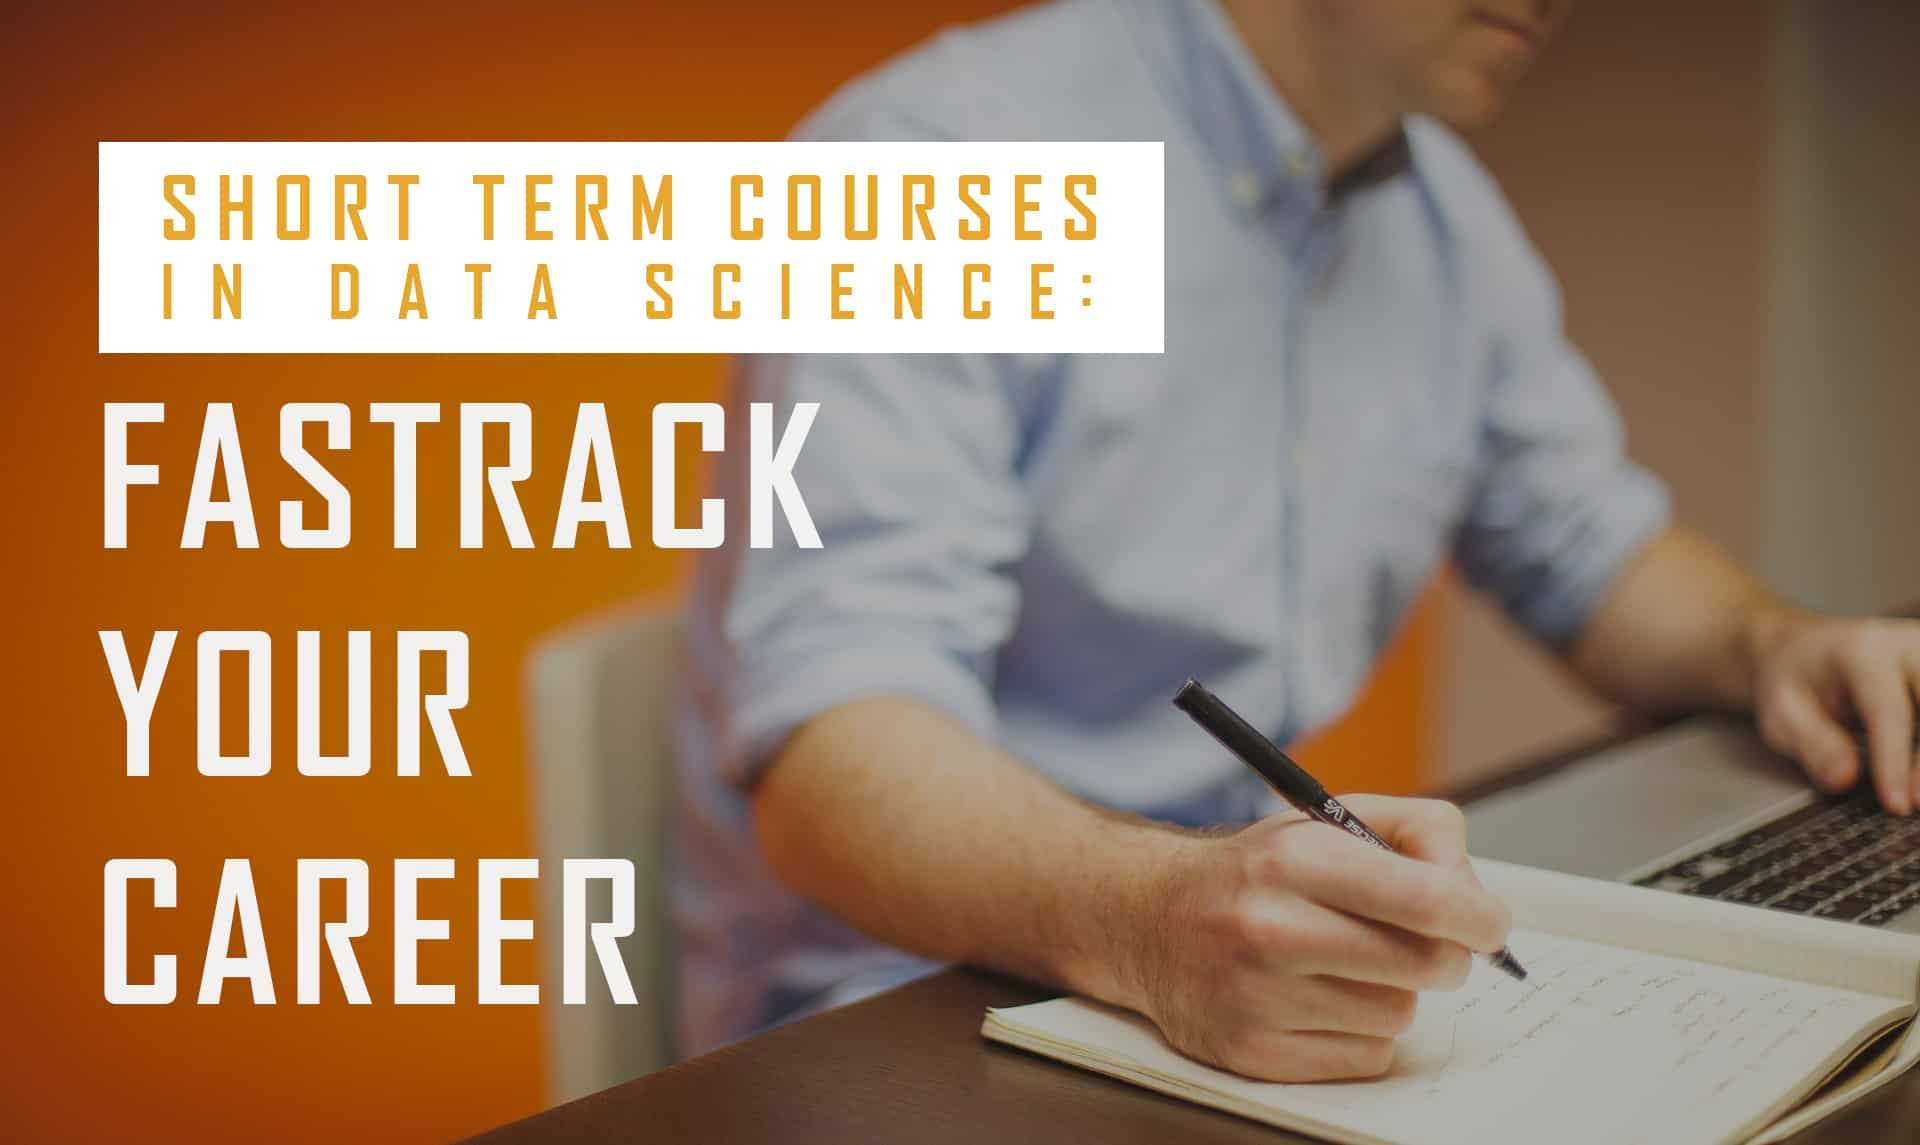 Do short term courses in data science boost your career?